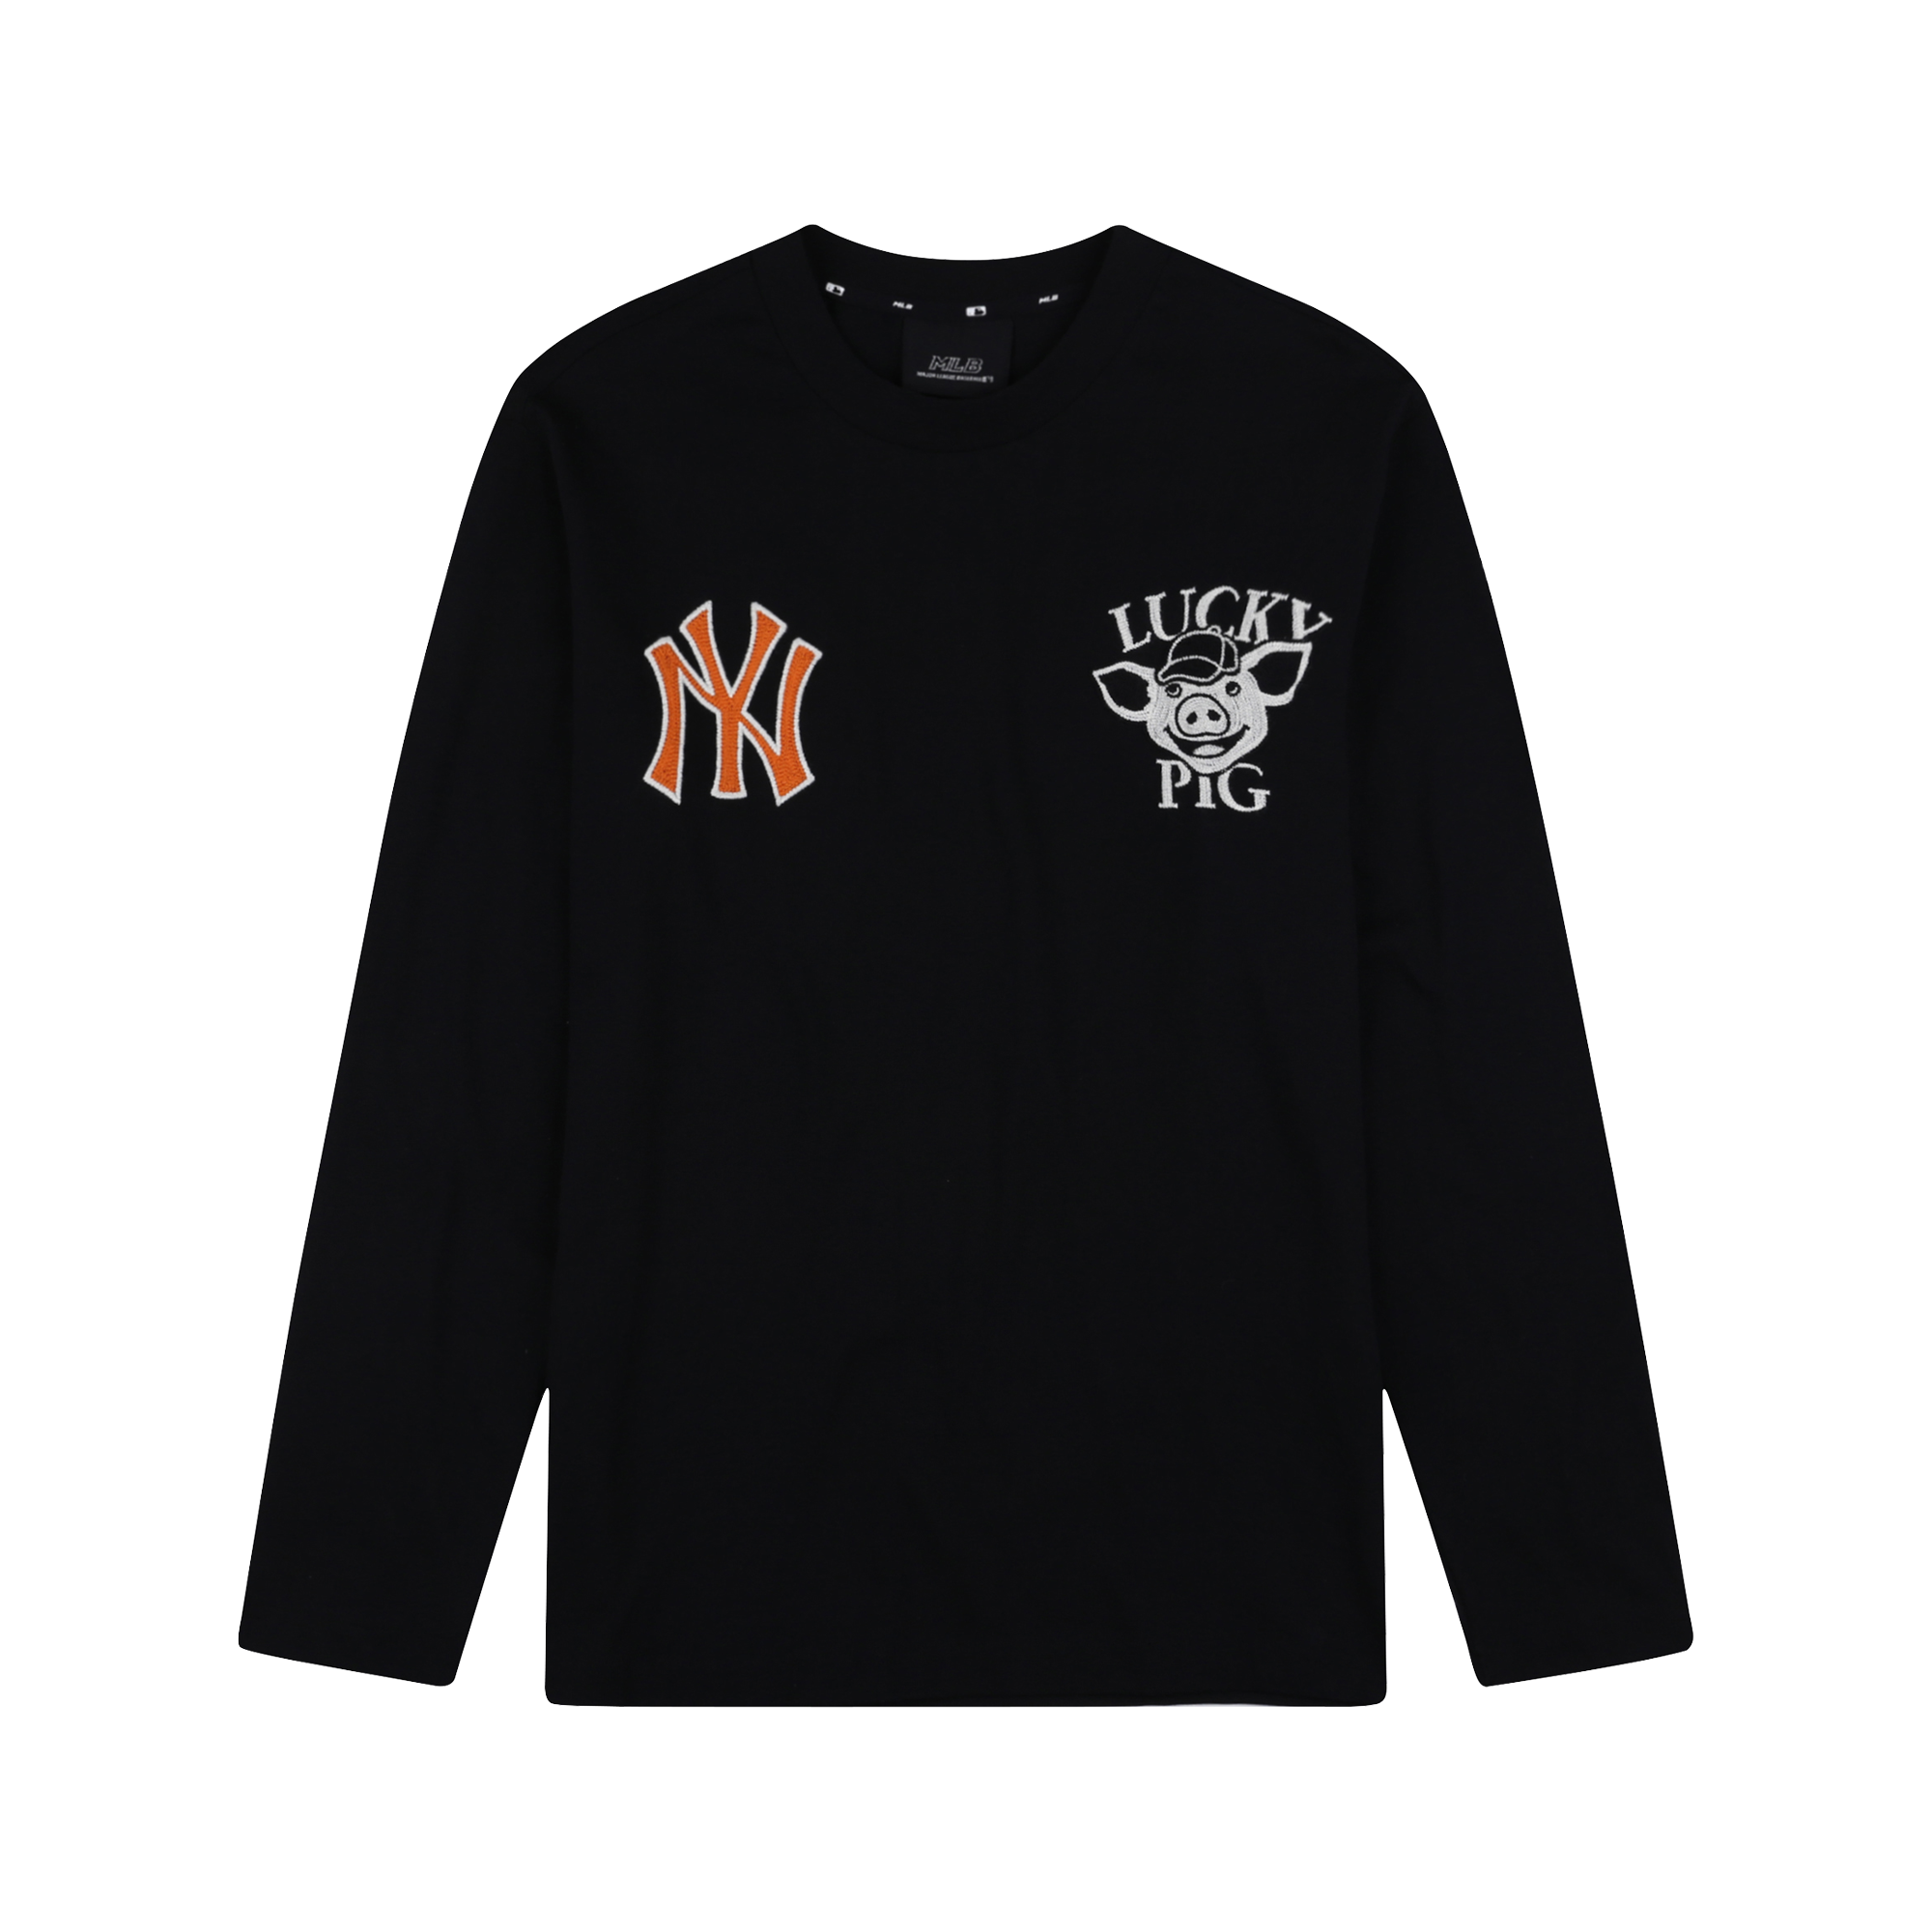 NEW YORK YANKEES LUCKY PIG LONG SLEEVE T-SHIRT